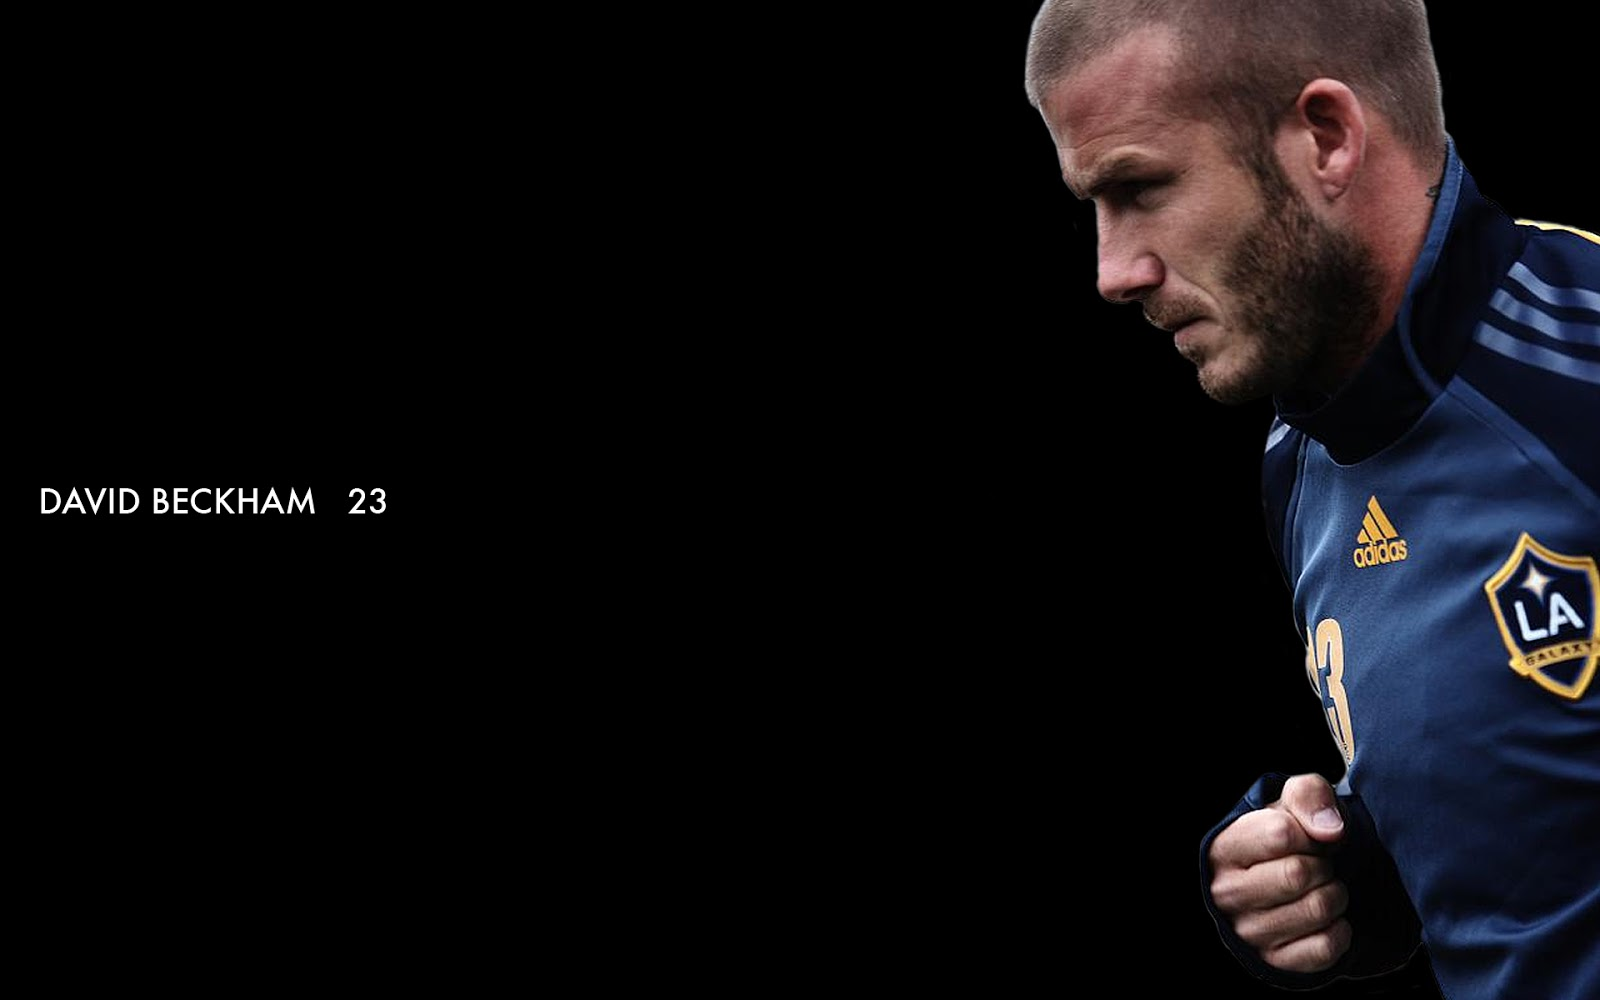 Beckham Wallpapers Kick Football Hd Wallpaper PC Android iPhone 1600x1000